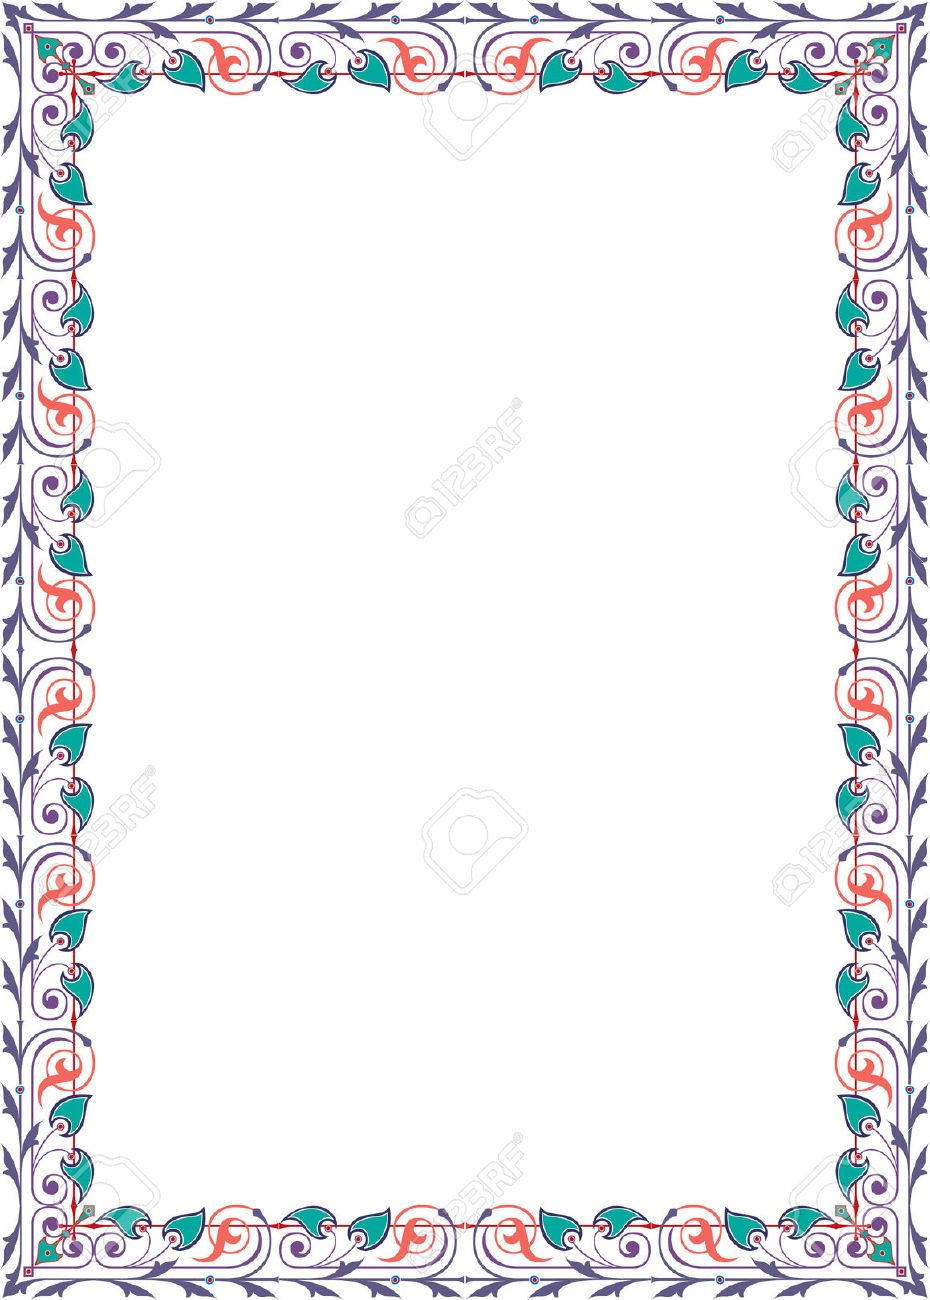 Borders Designs Png, png collections at sccpre.cat.